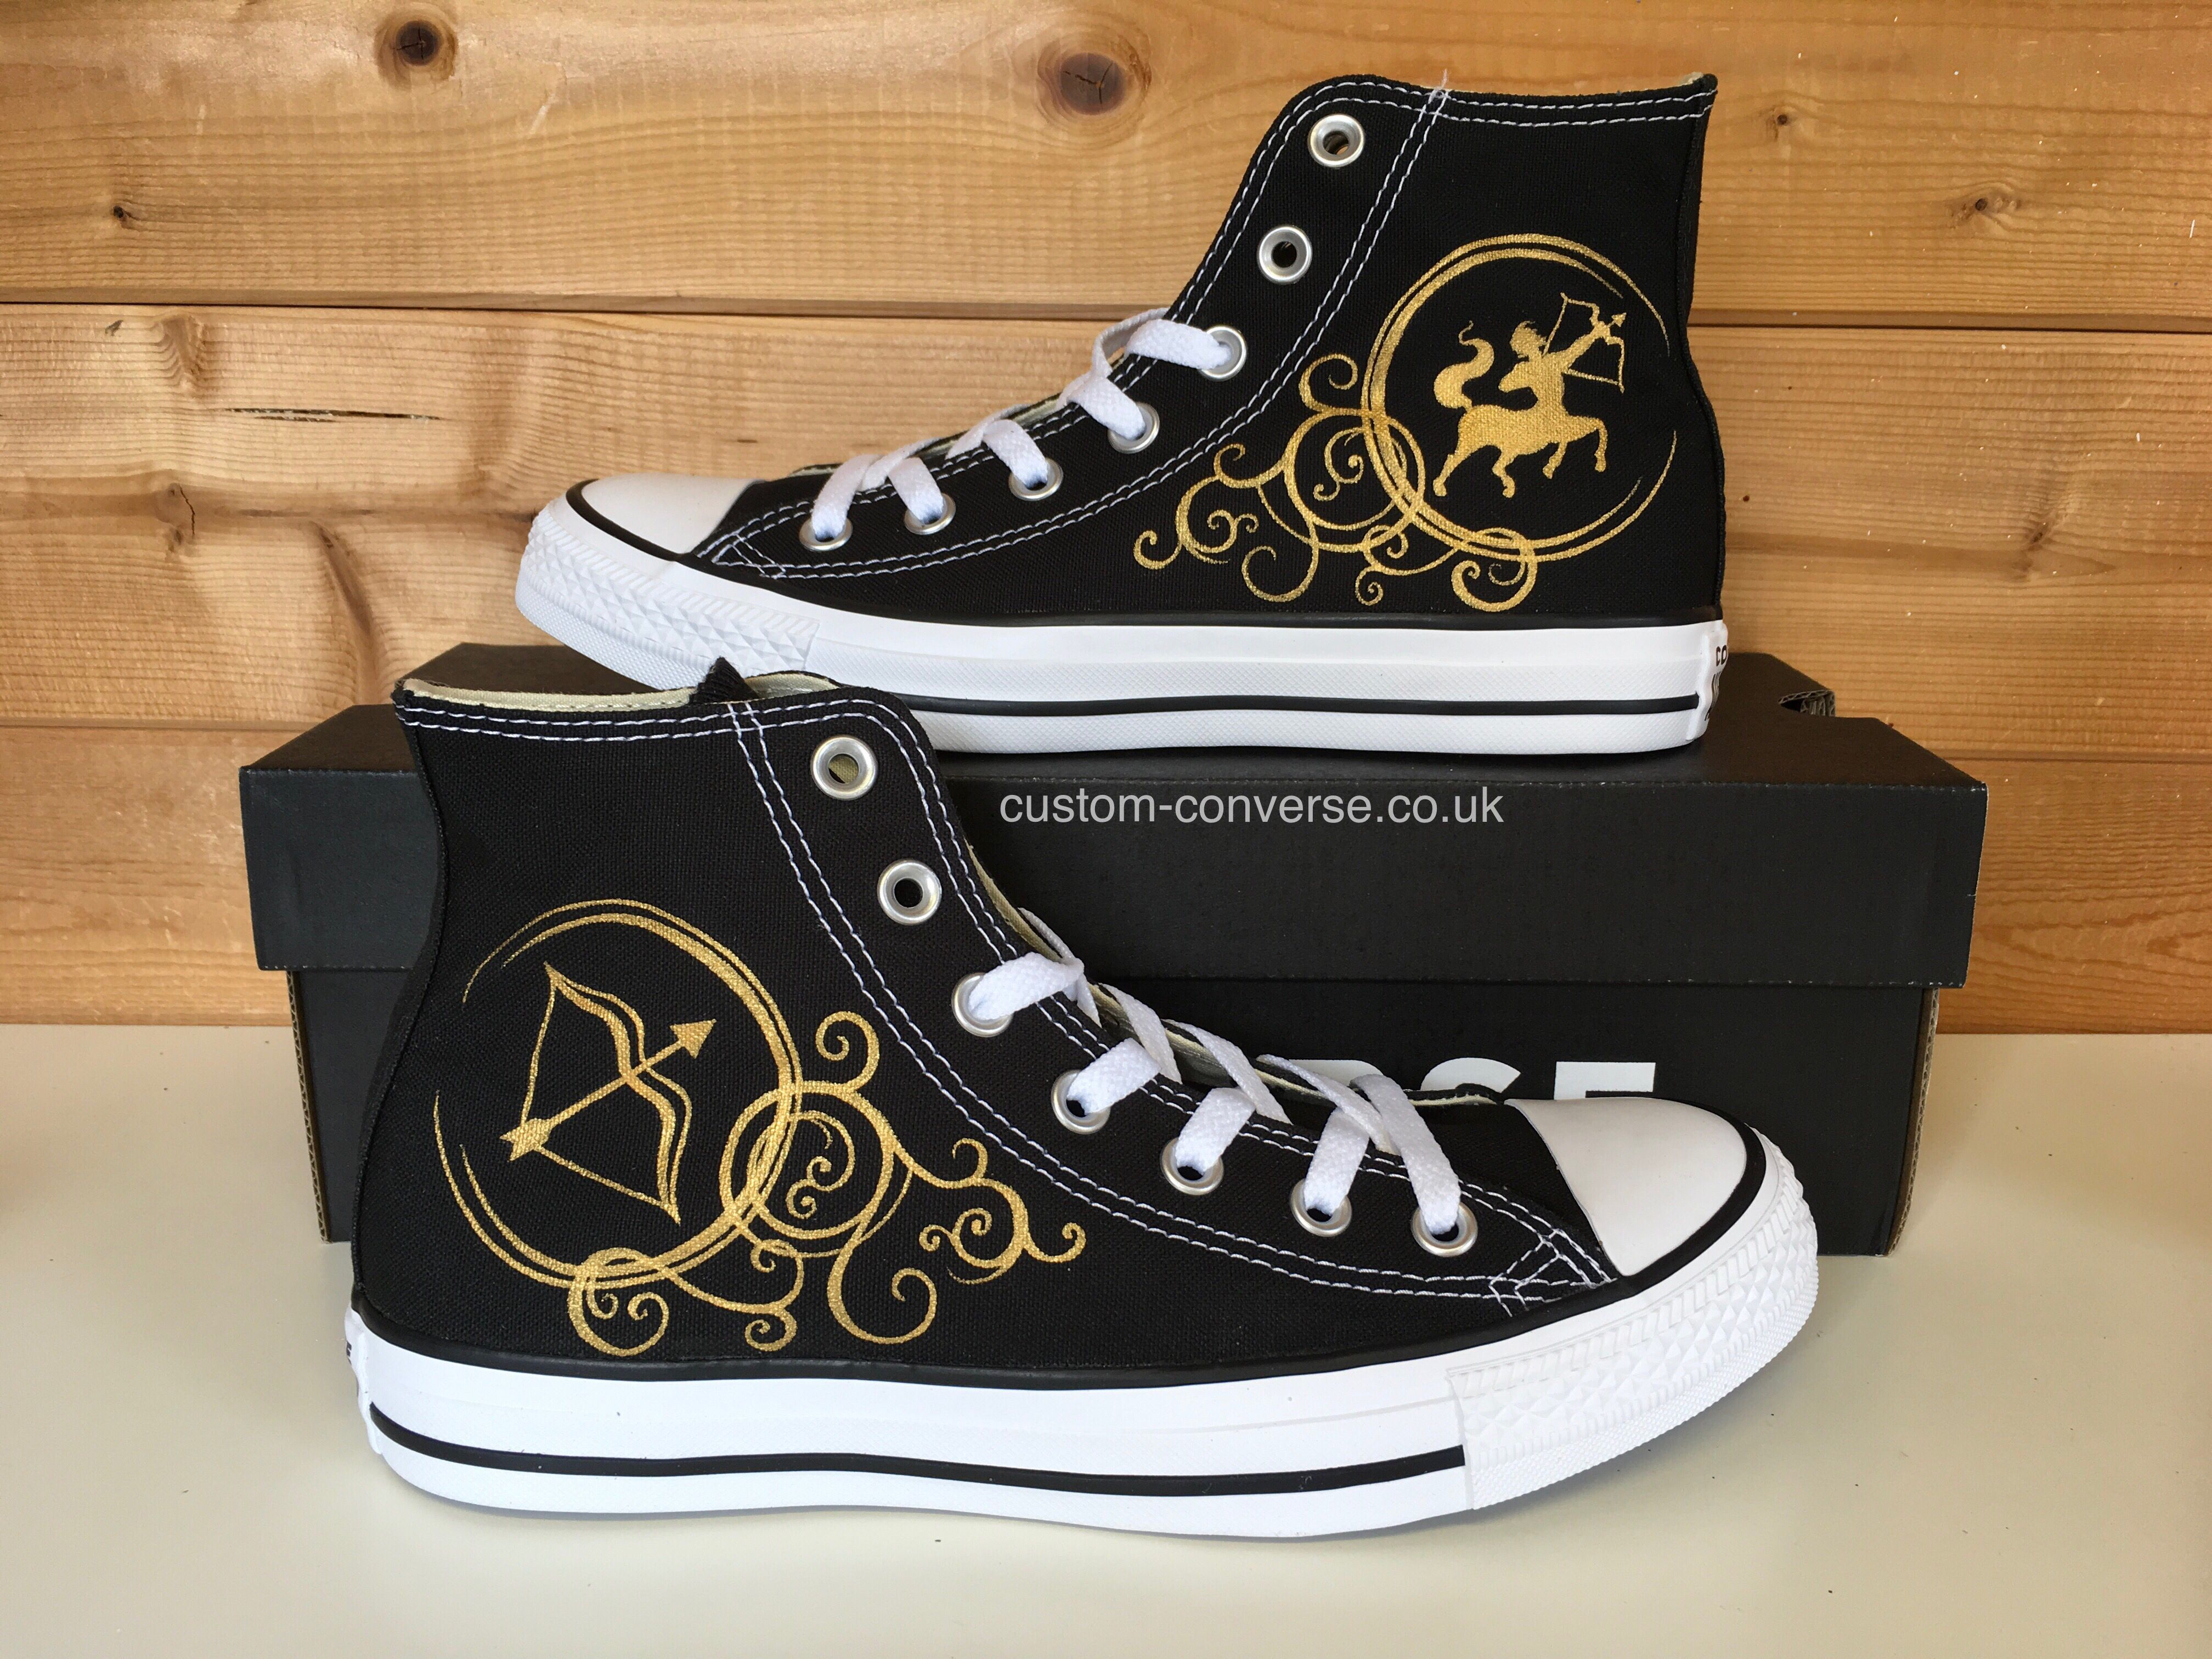 02f9da53e841 Hand painted Sagittarius design on black high top converse trainers   sagittarius  converse  personalised  giftguide  christmasgifts   handpainted ...